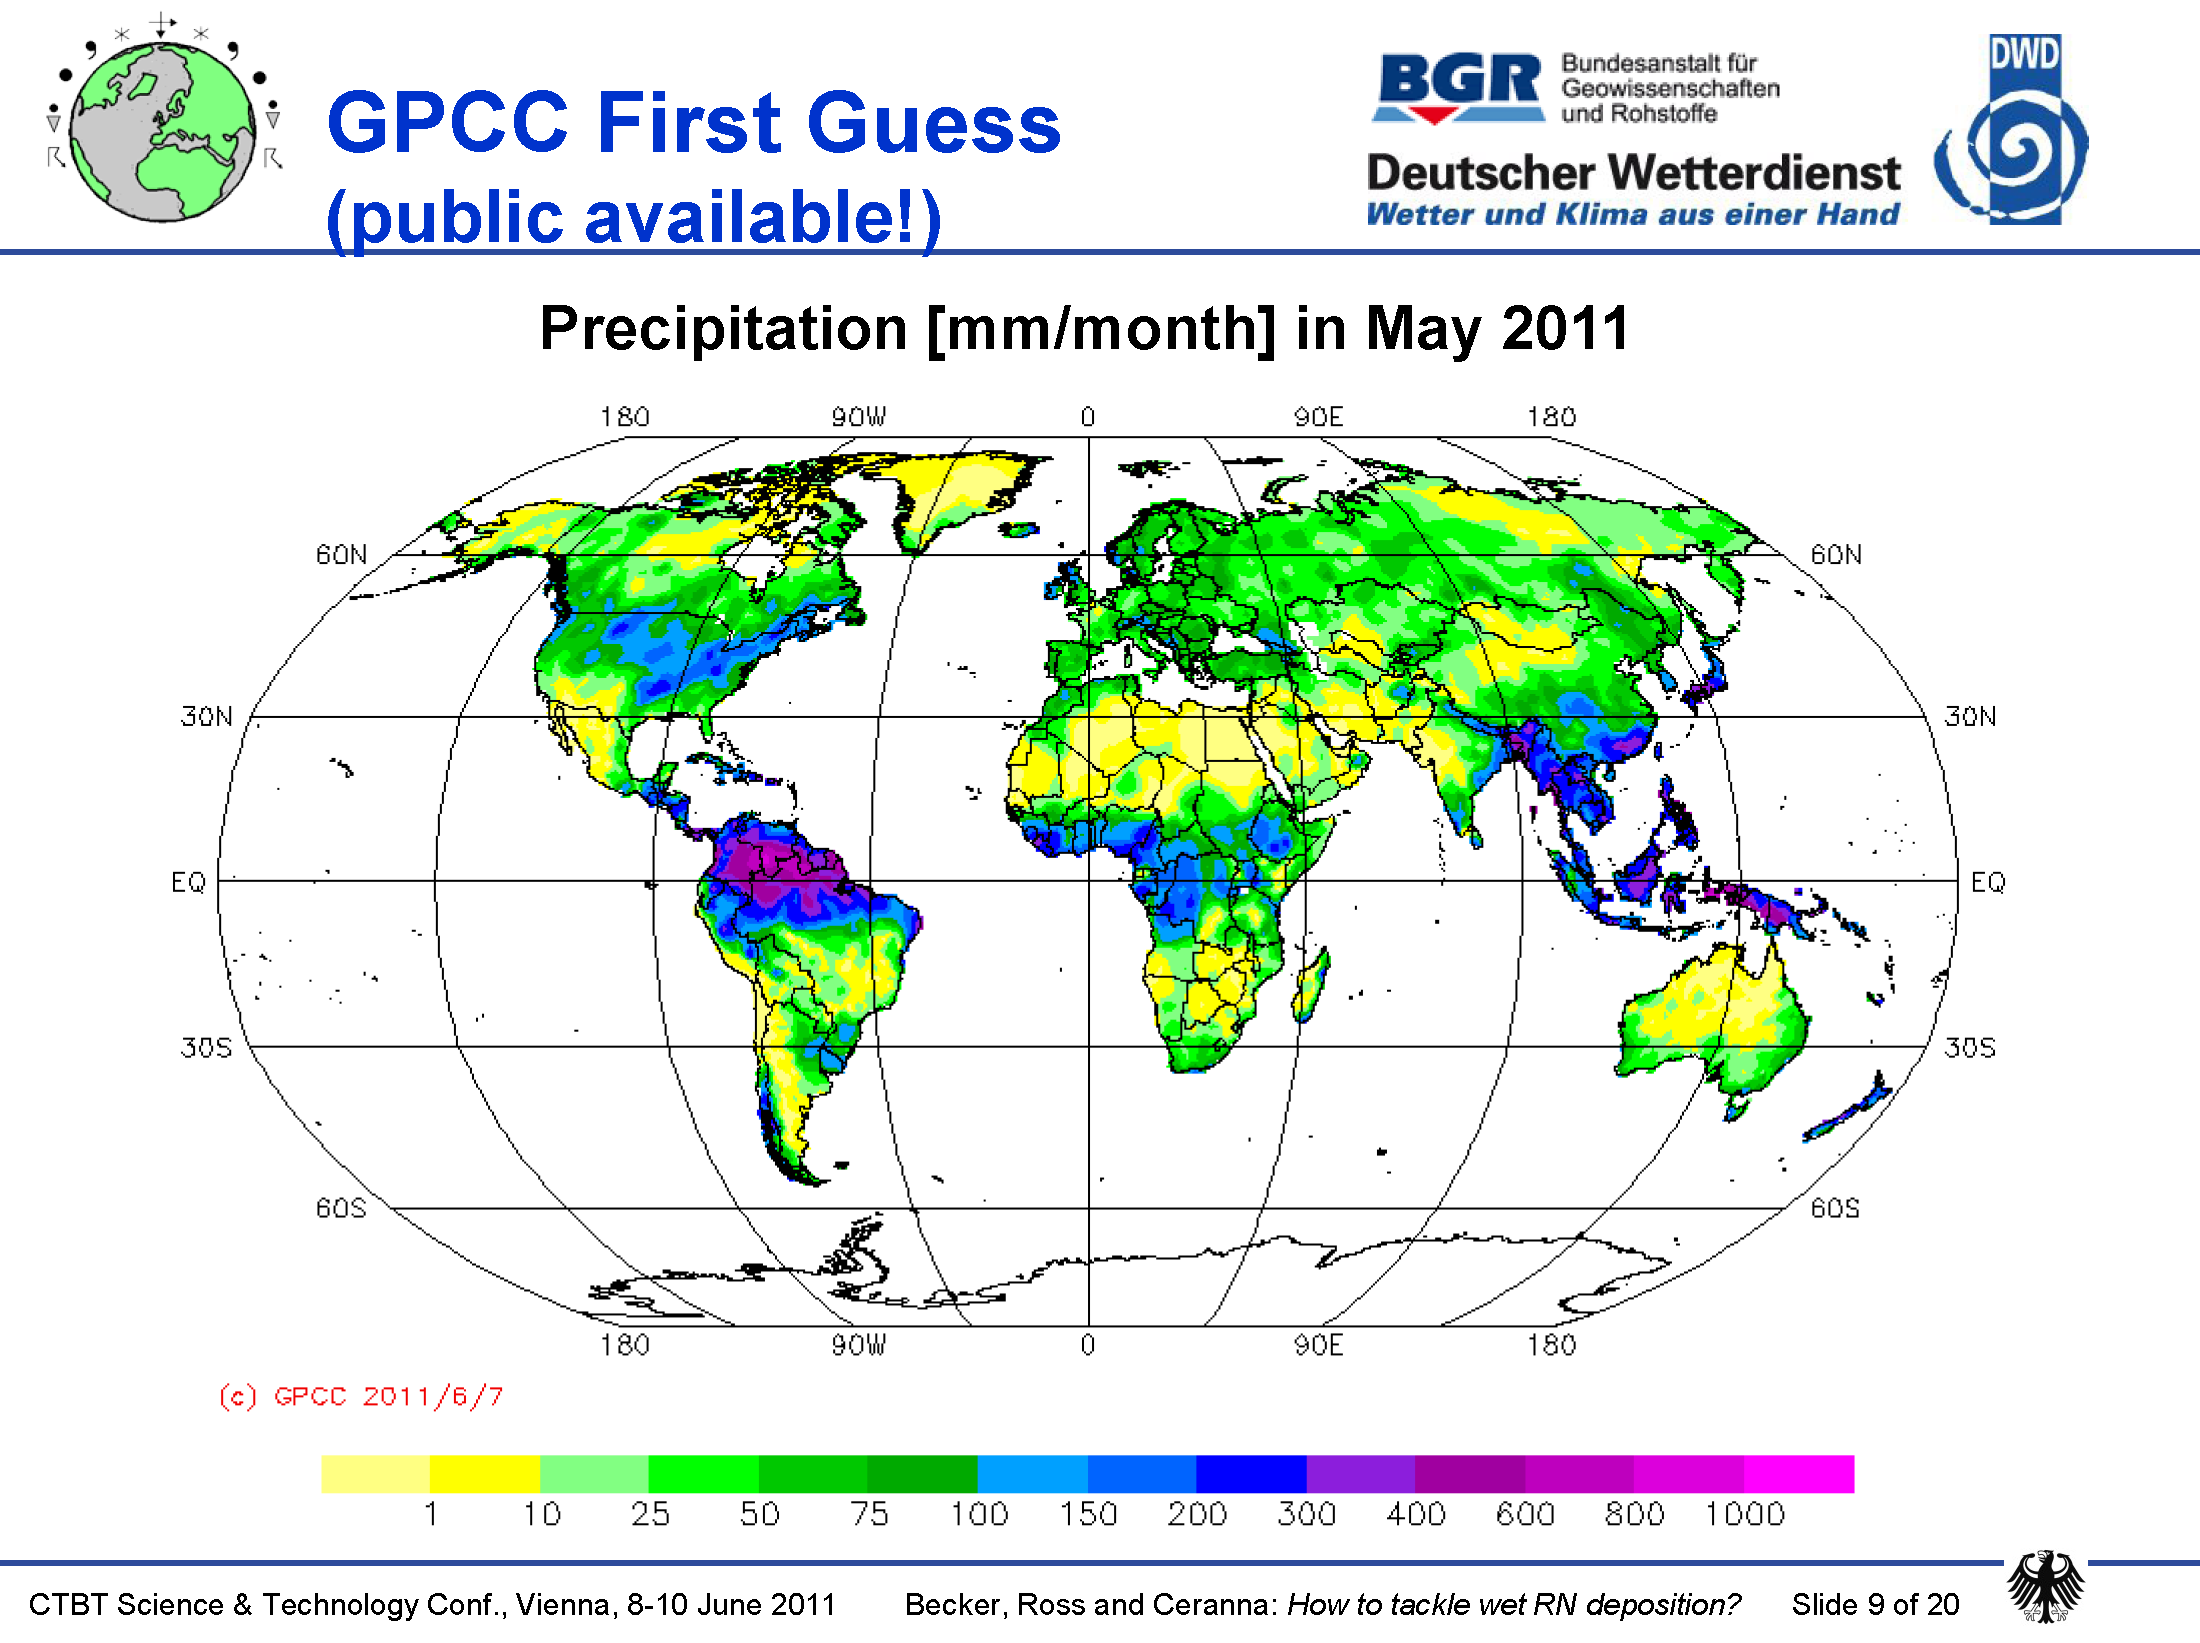 T4-O9 A_Becker On the potential of public available gridded precipitation Decrypted_Page_09